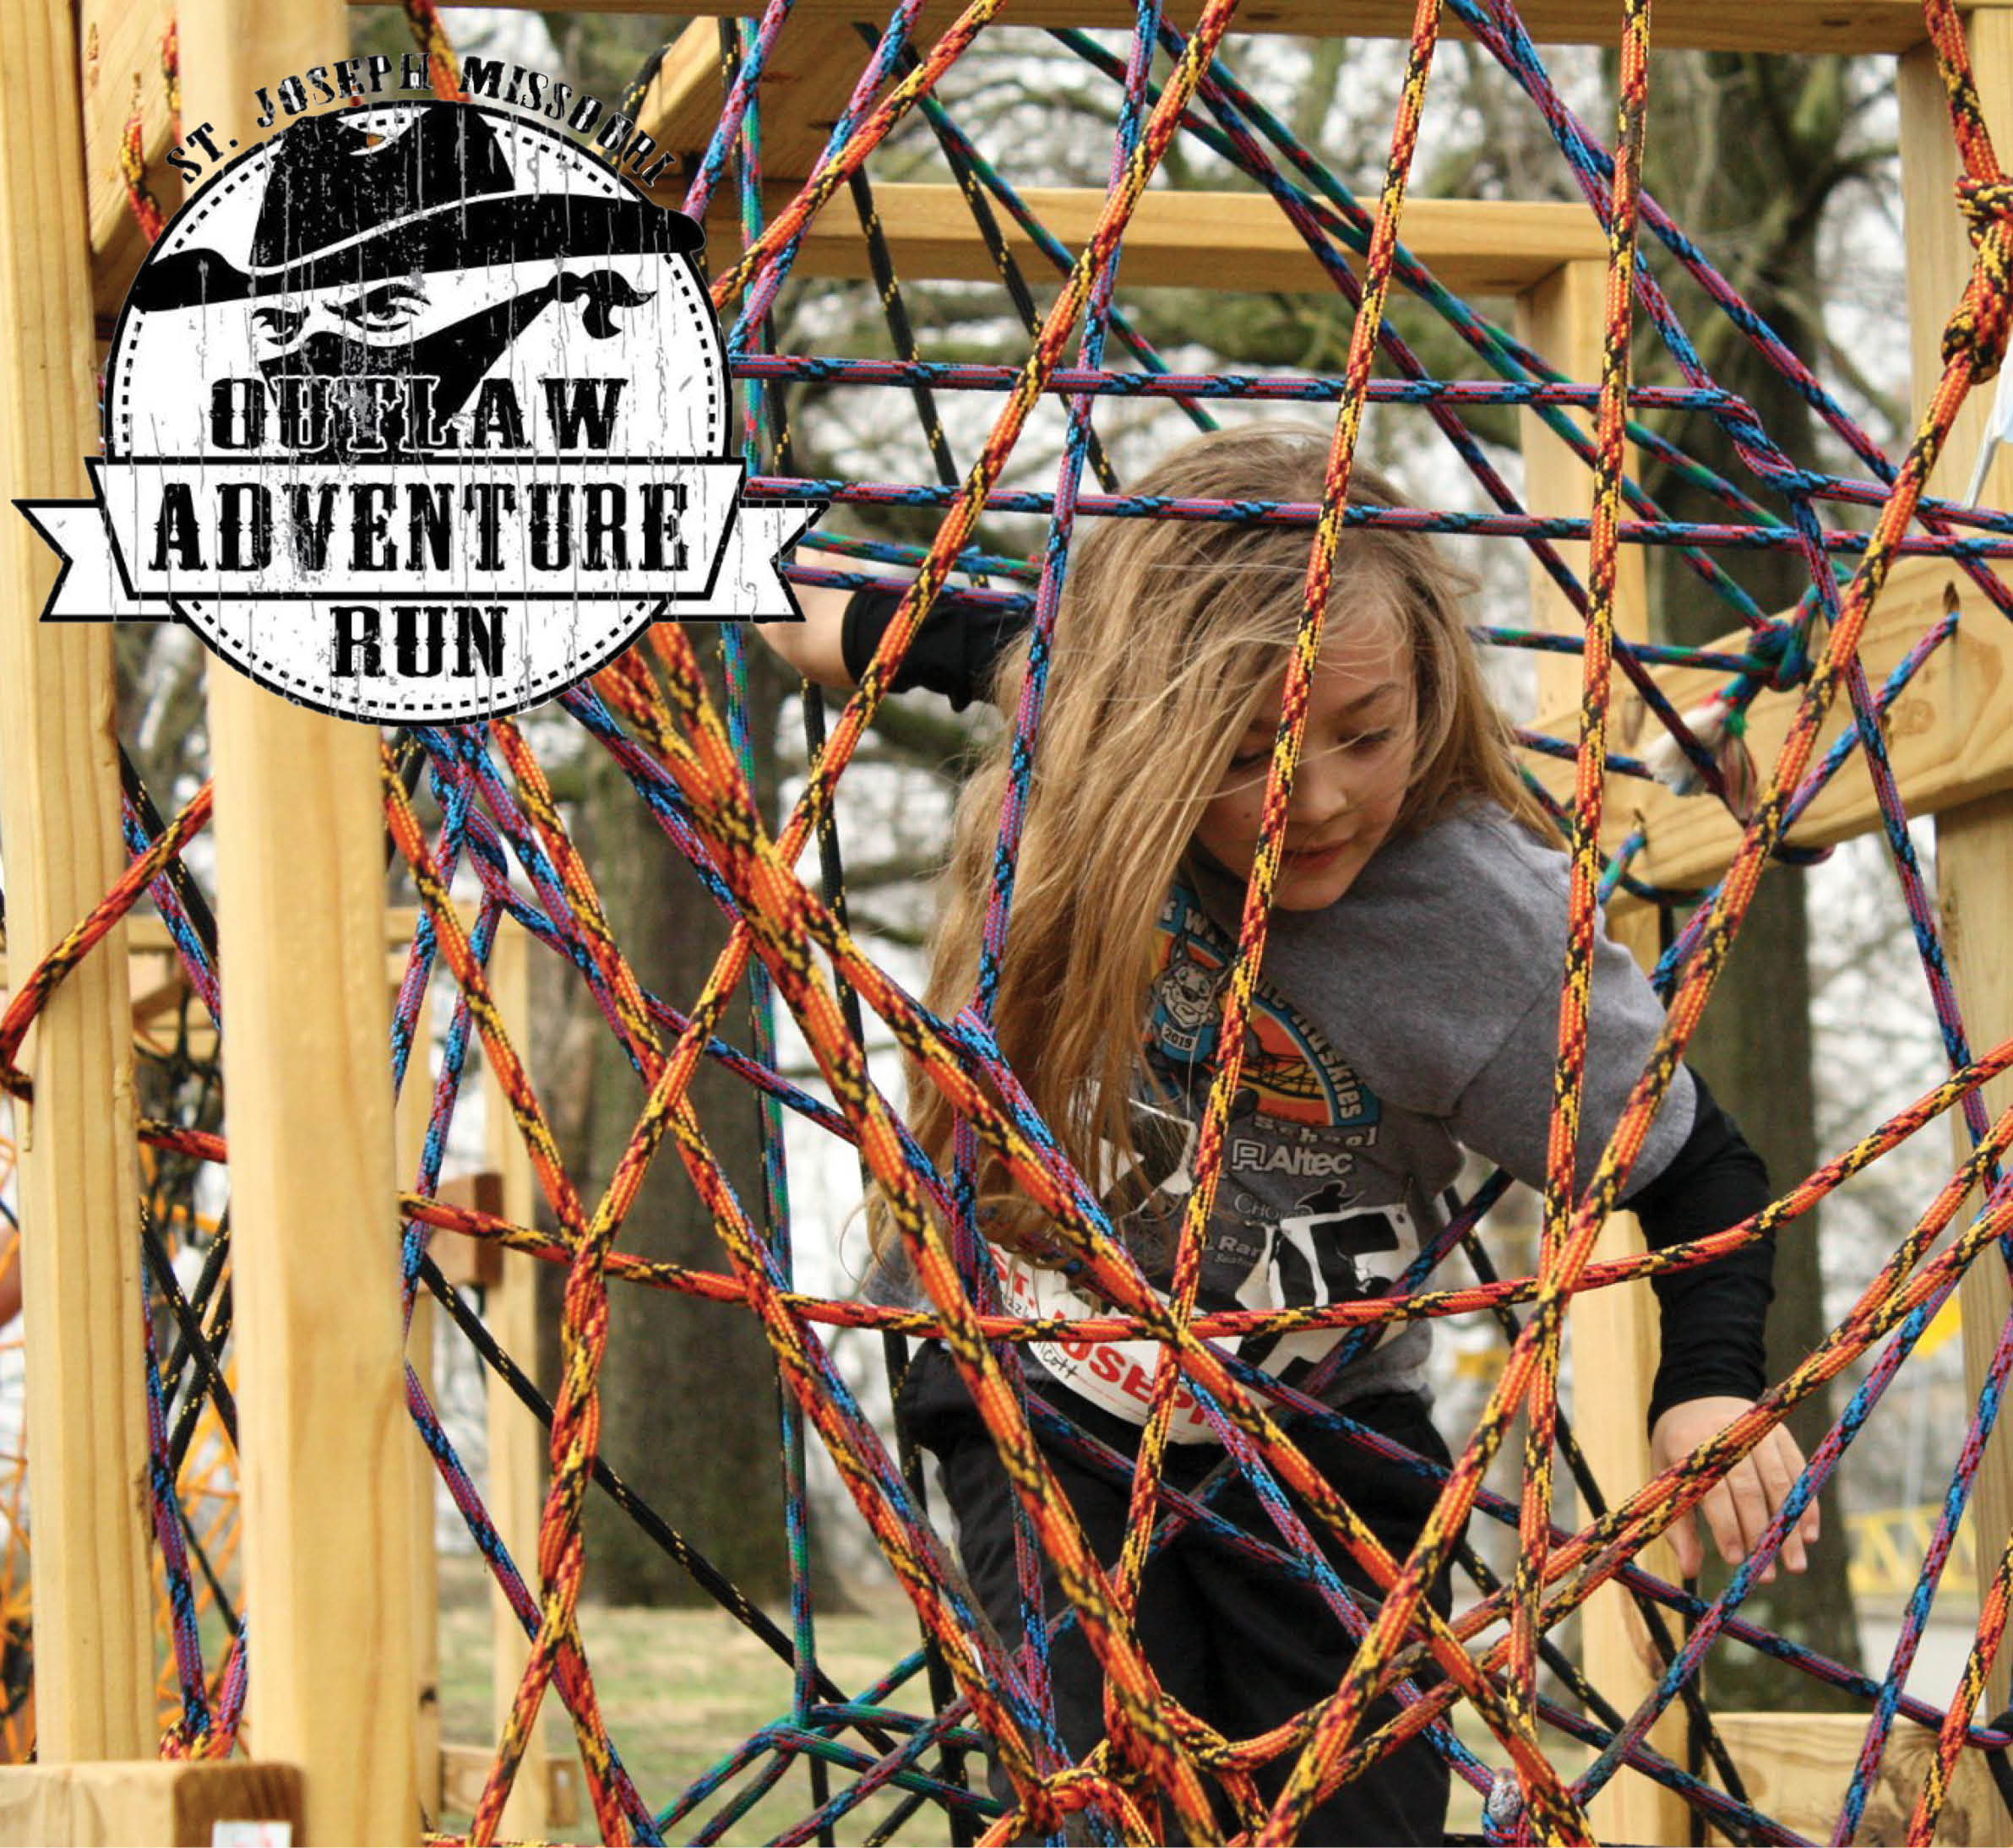 Outlaw Adventure Run Event